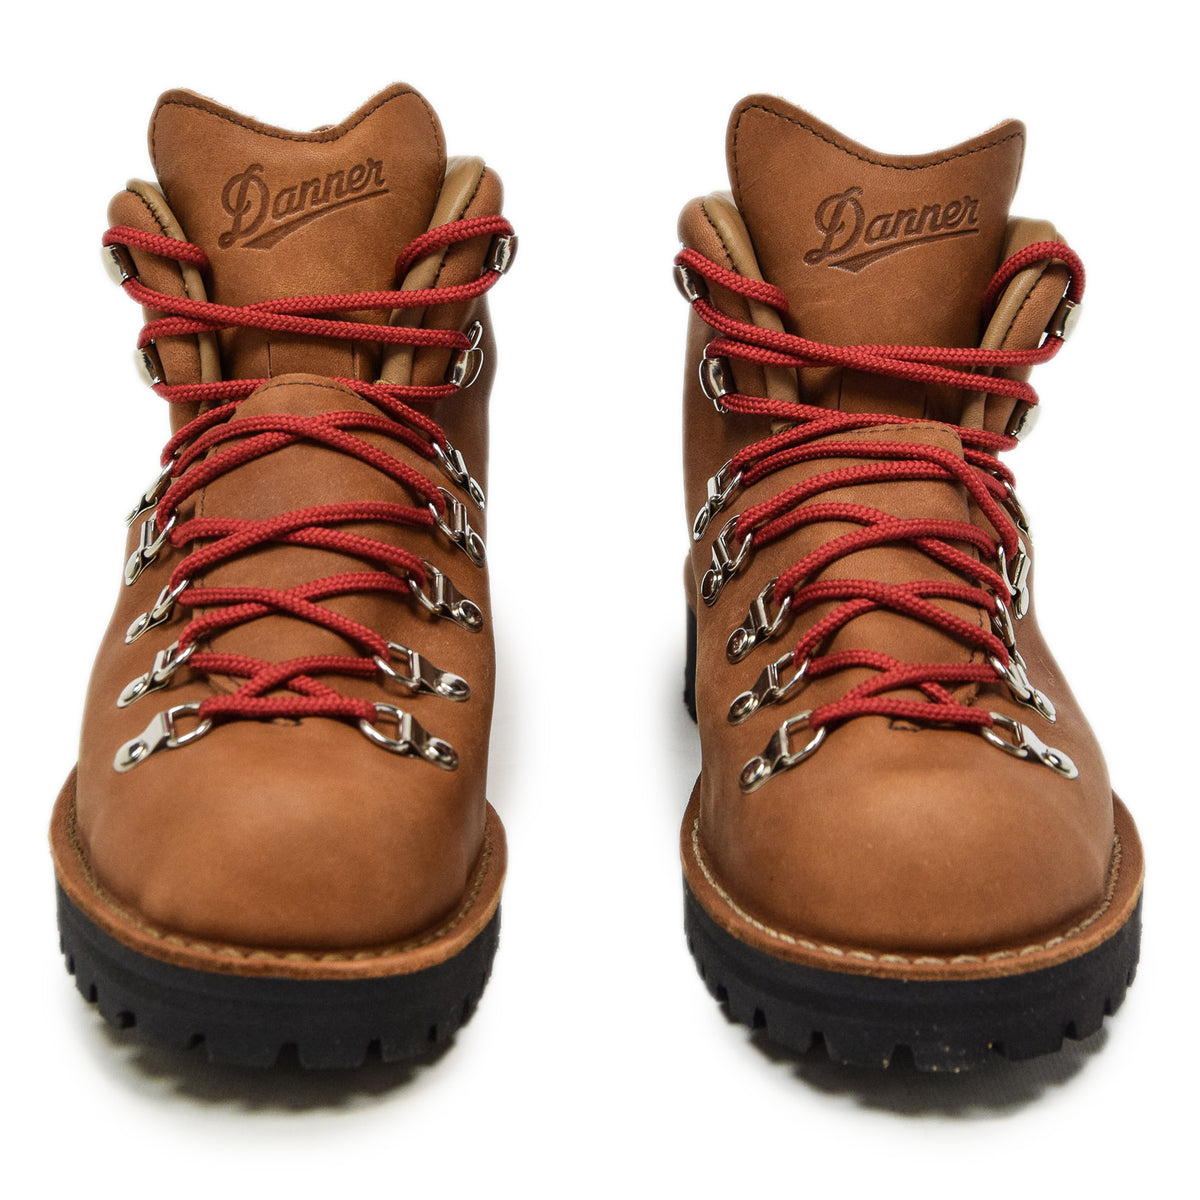 Danner Mountain Light Leather Gore-Tex Boot Cascade Clovis Front